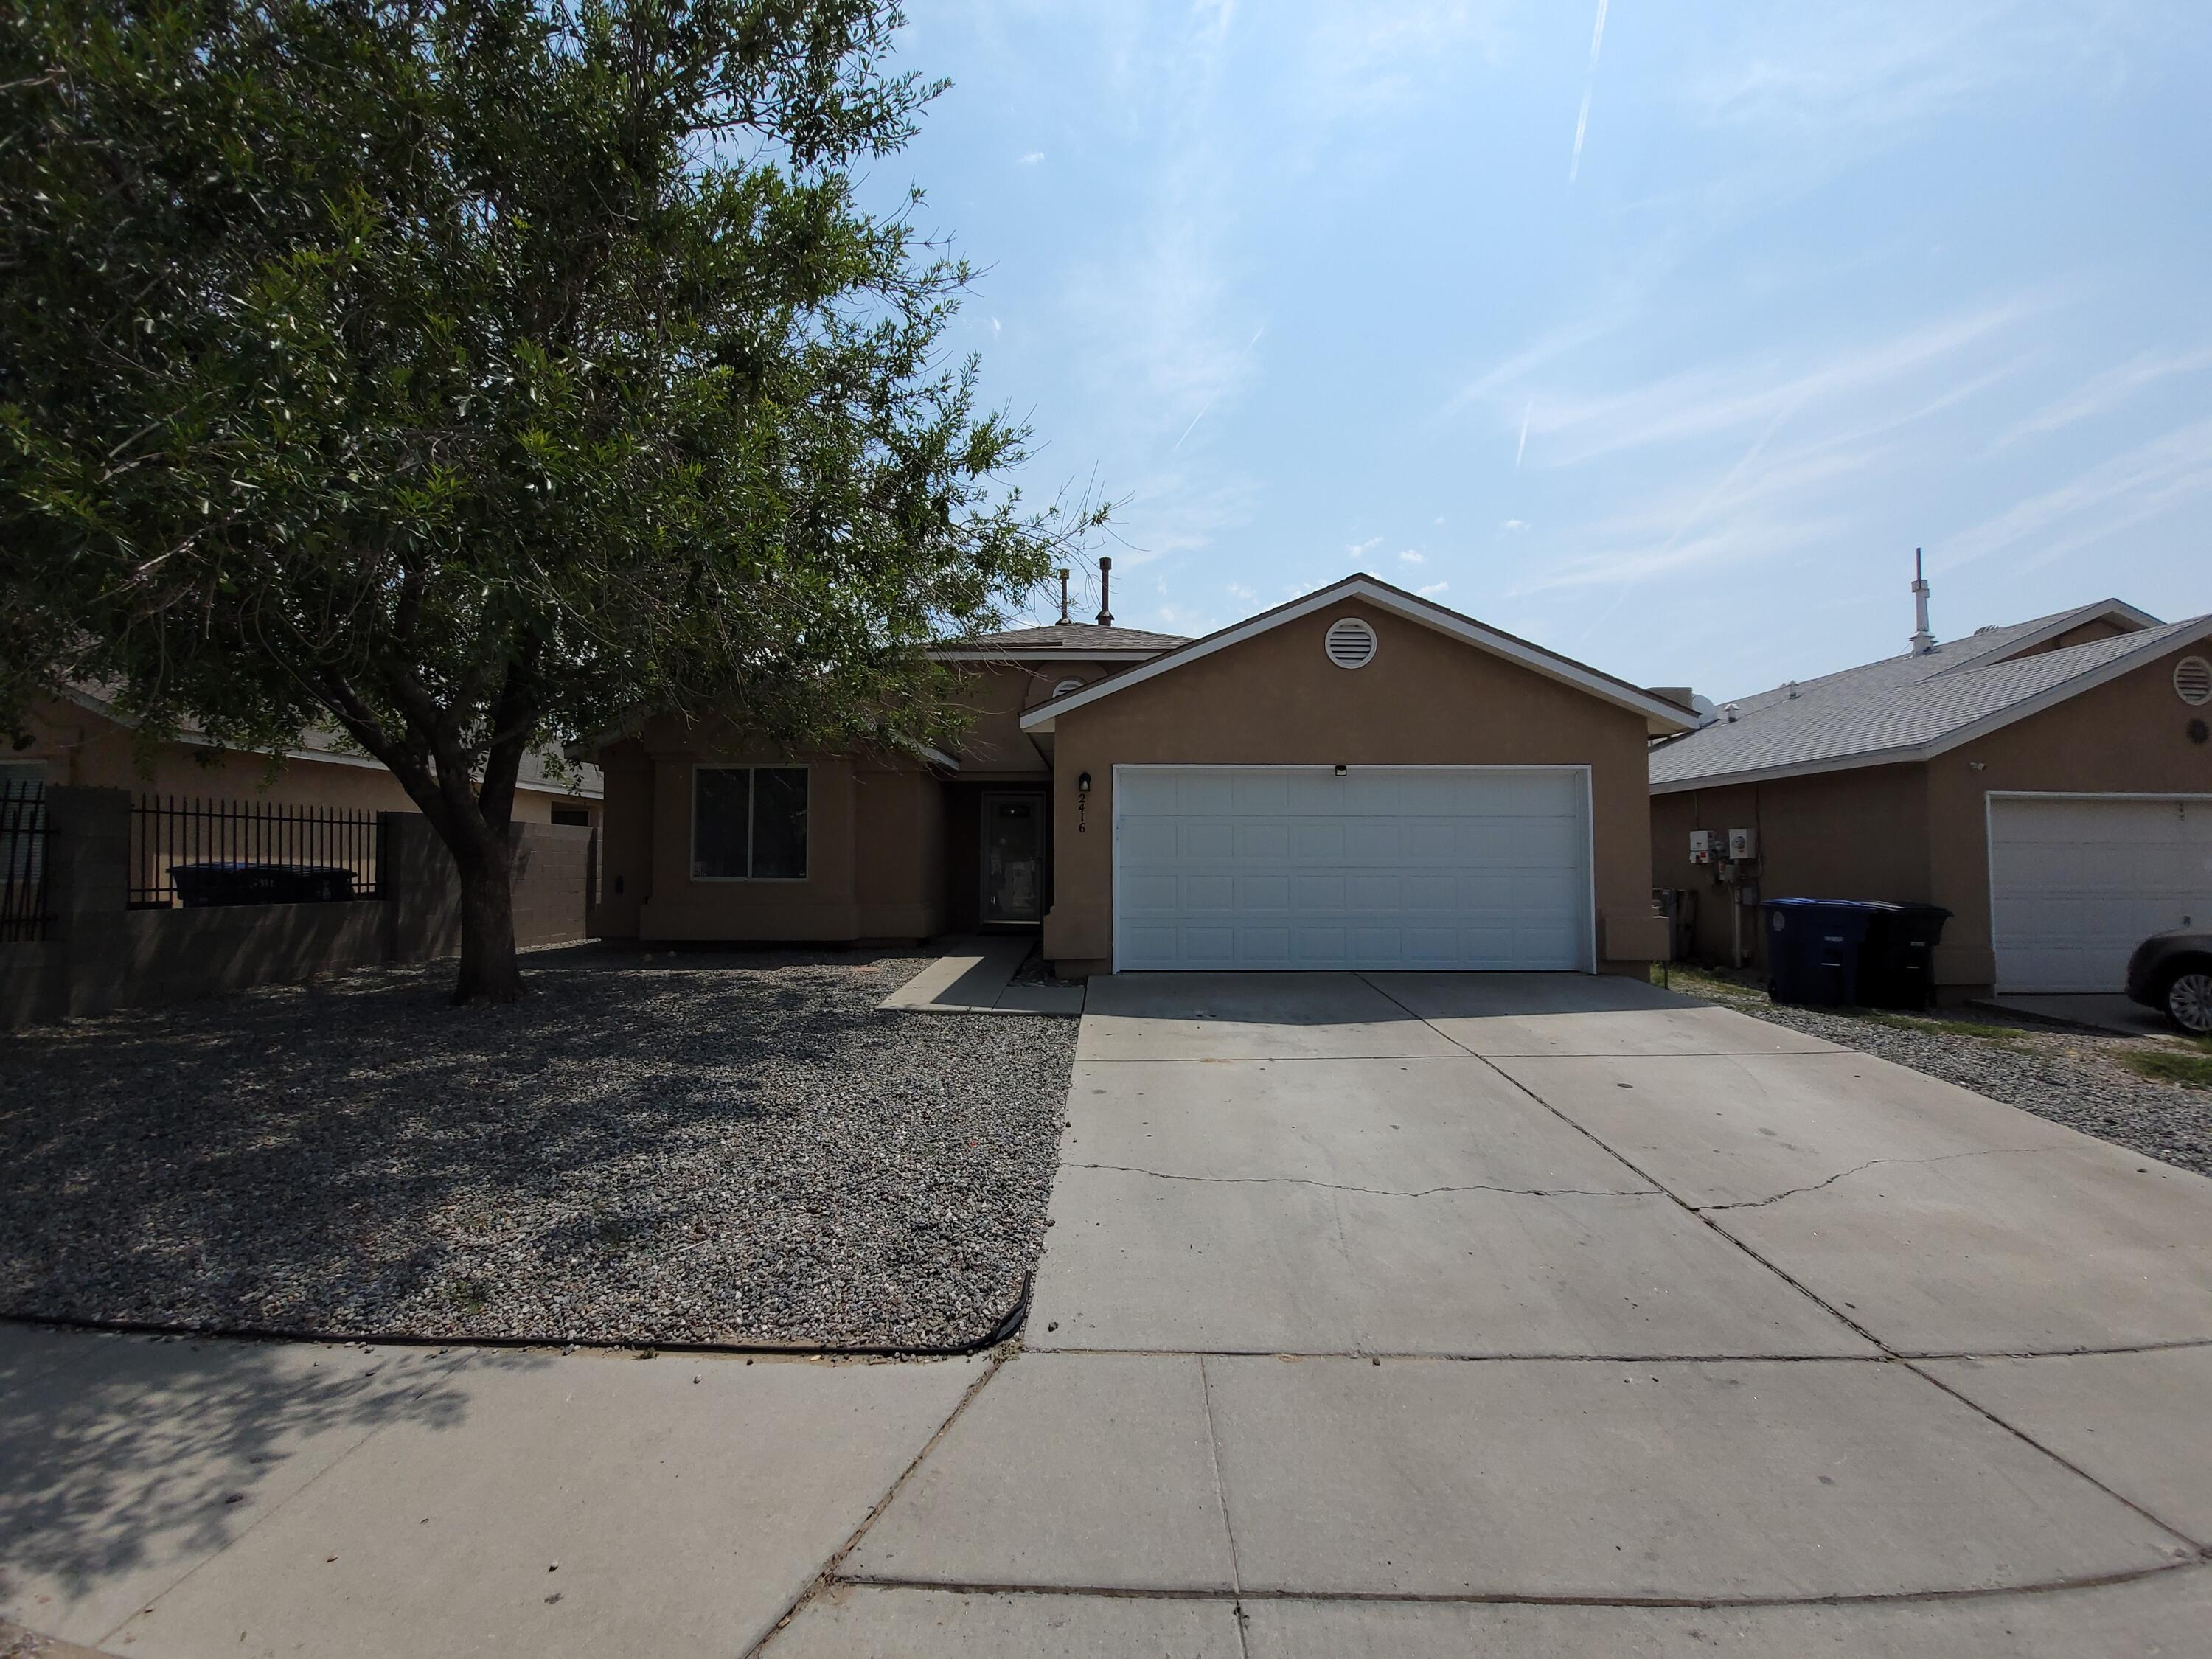 This Home is in a great Neighborhood, It is remodeled with a new high end roof cabinets, tile and carpet. This great house has 4 bedrooms,2 full bath rooms and Vaulted ceilings. It has a very open kitchen with granite countertops and upgraded bartop with view of entertaining room. A nice walled private back yard to bar b que with the family and enjoy the eastern views. You will enjoy this open floor plan.